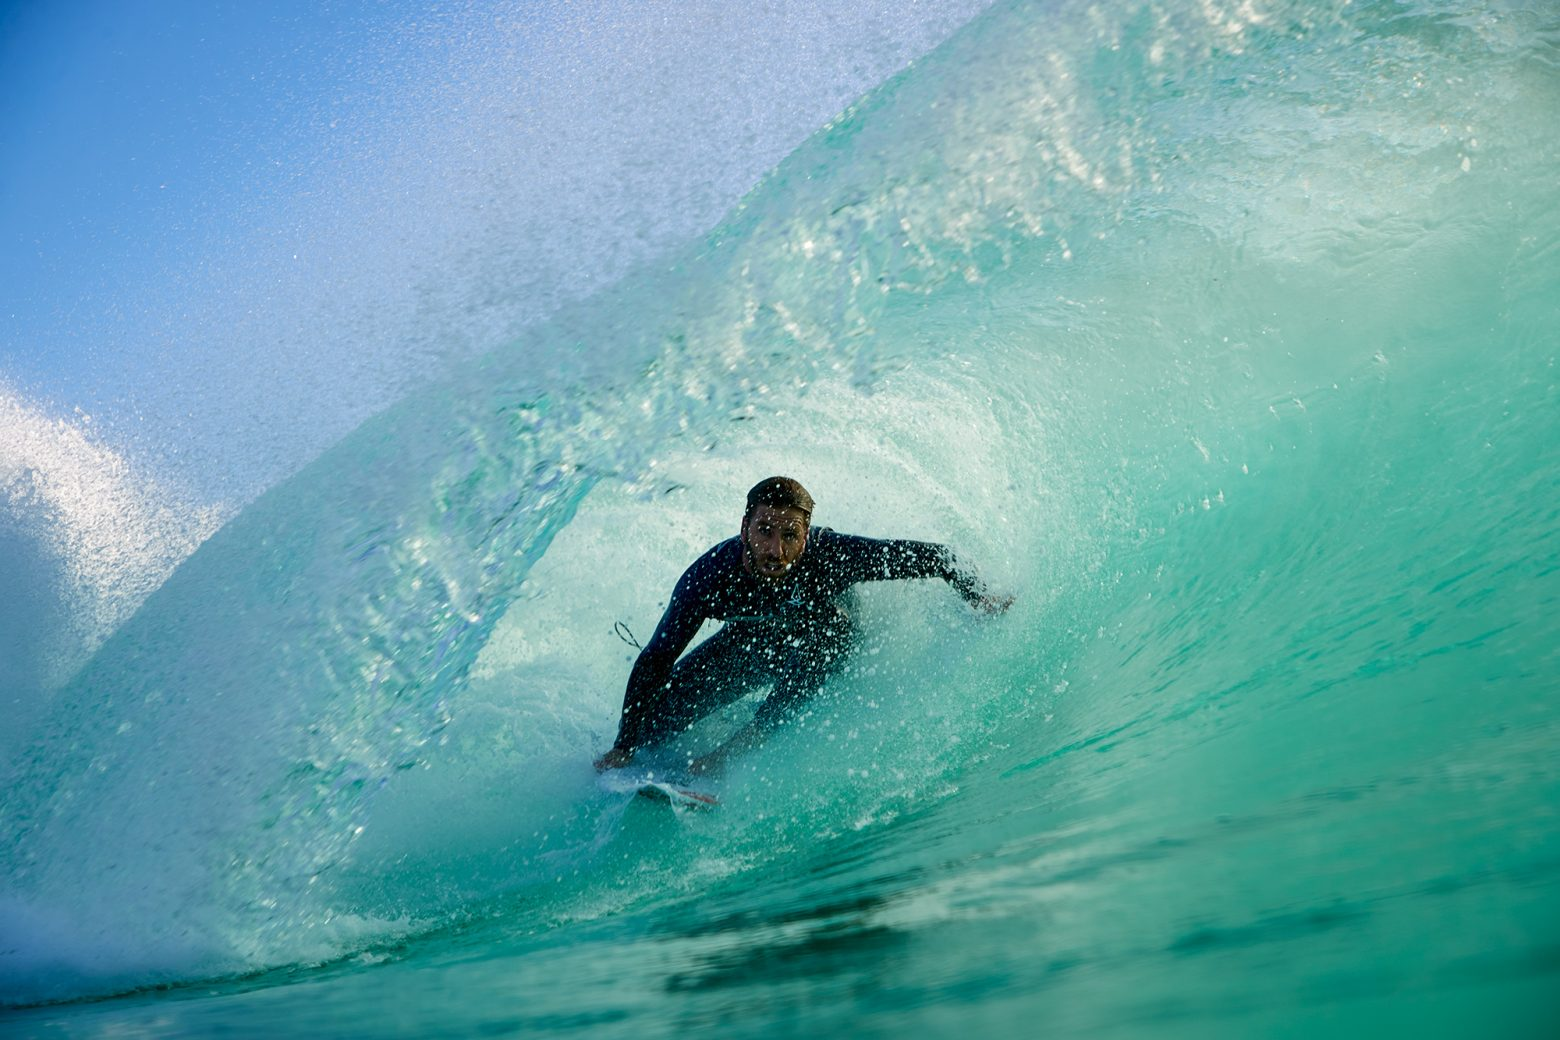 Back hand tubes are Blake's specialty